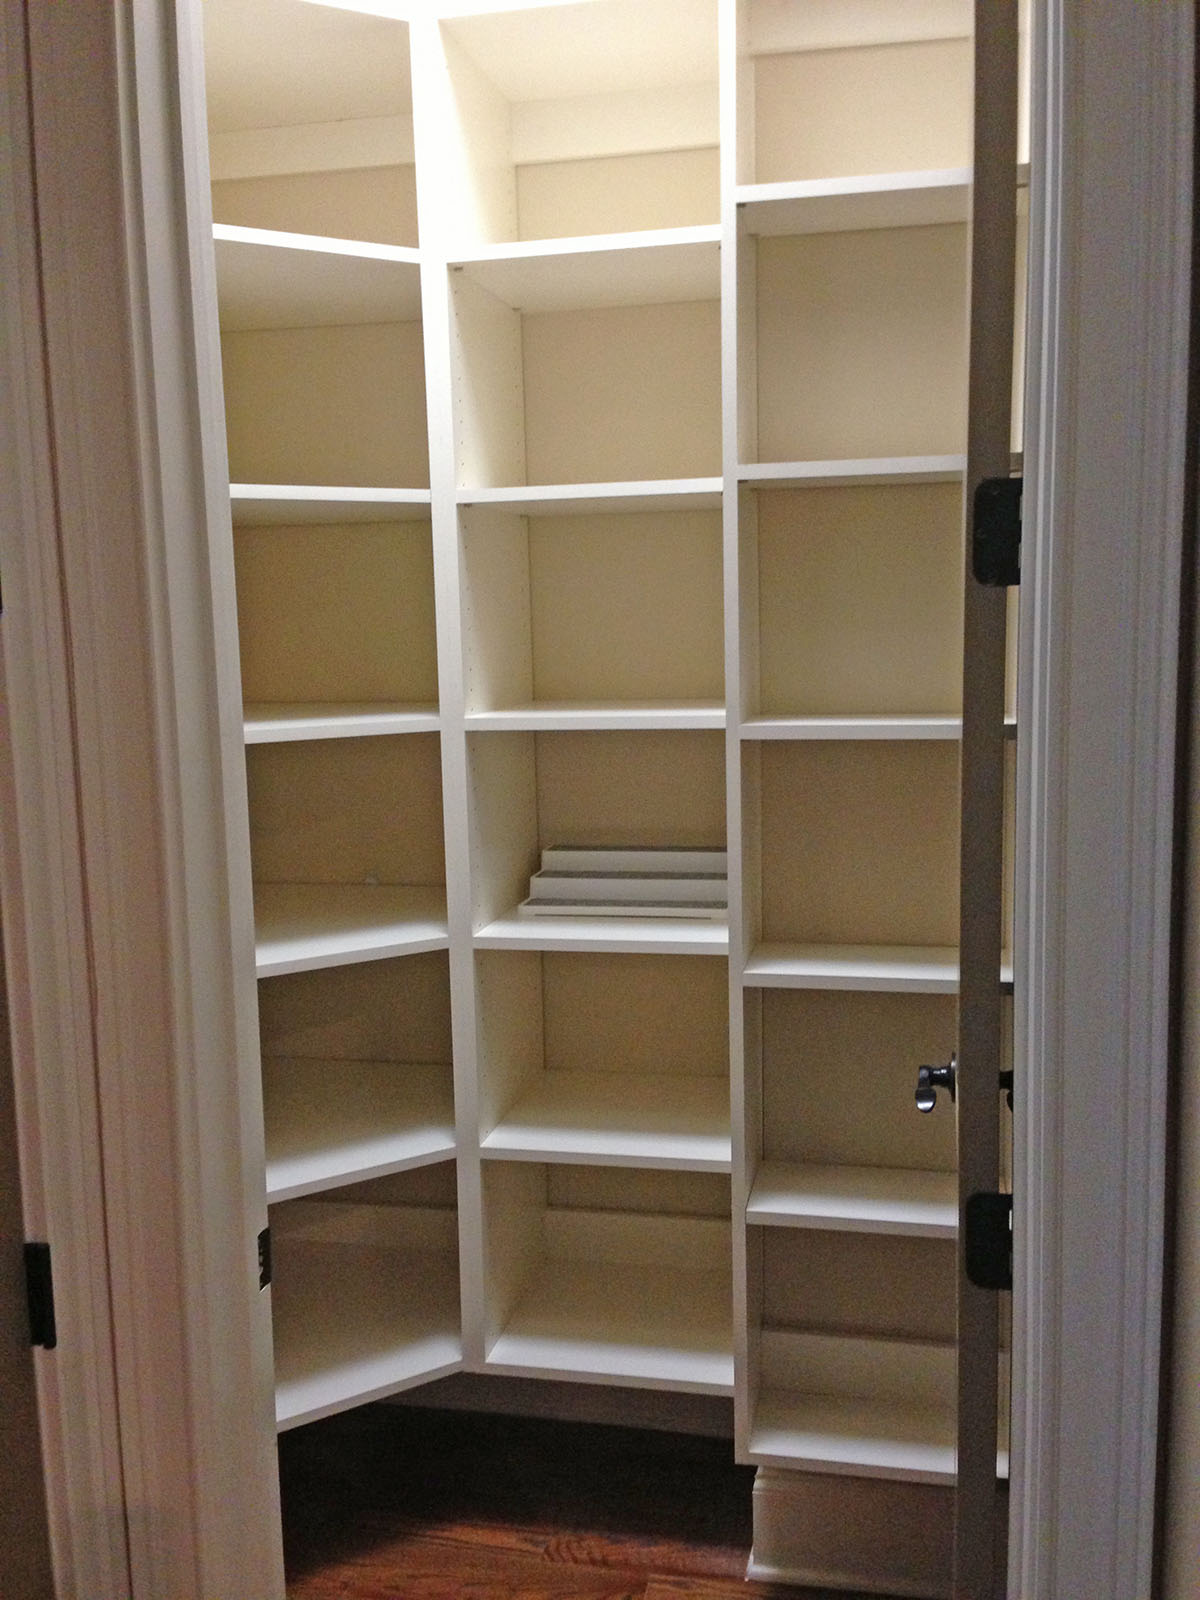 custom pantry storage